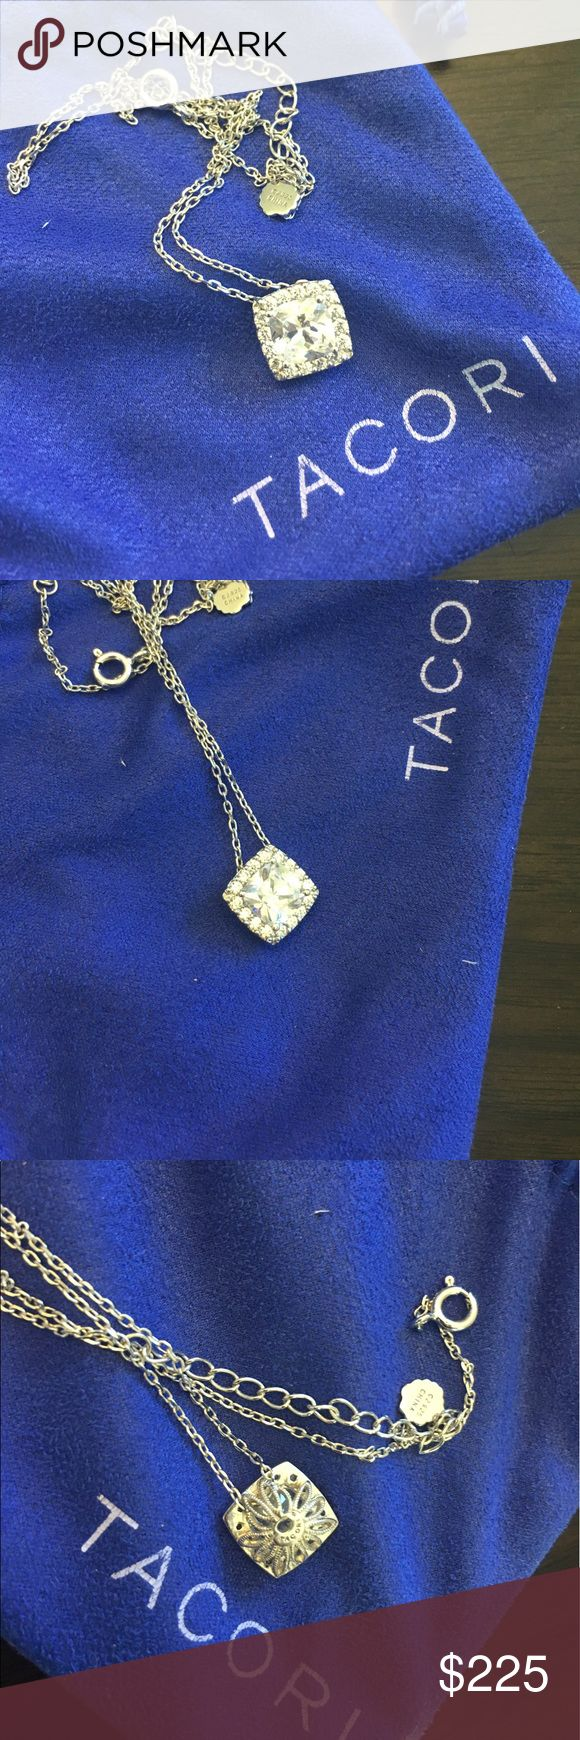 Favorite Sterling Silver Pendant Gorgeous Tacori necklace. Cushion cut center stone (not diamond) with 12 stones around it. 18 inch chain. Purchased at Kassab Jewelers in Portland, OR. Comes with original pouch. One of my favorites but I don't wear jewelry enough to keep this. Tacori Jewelry Necklaces